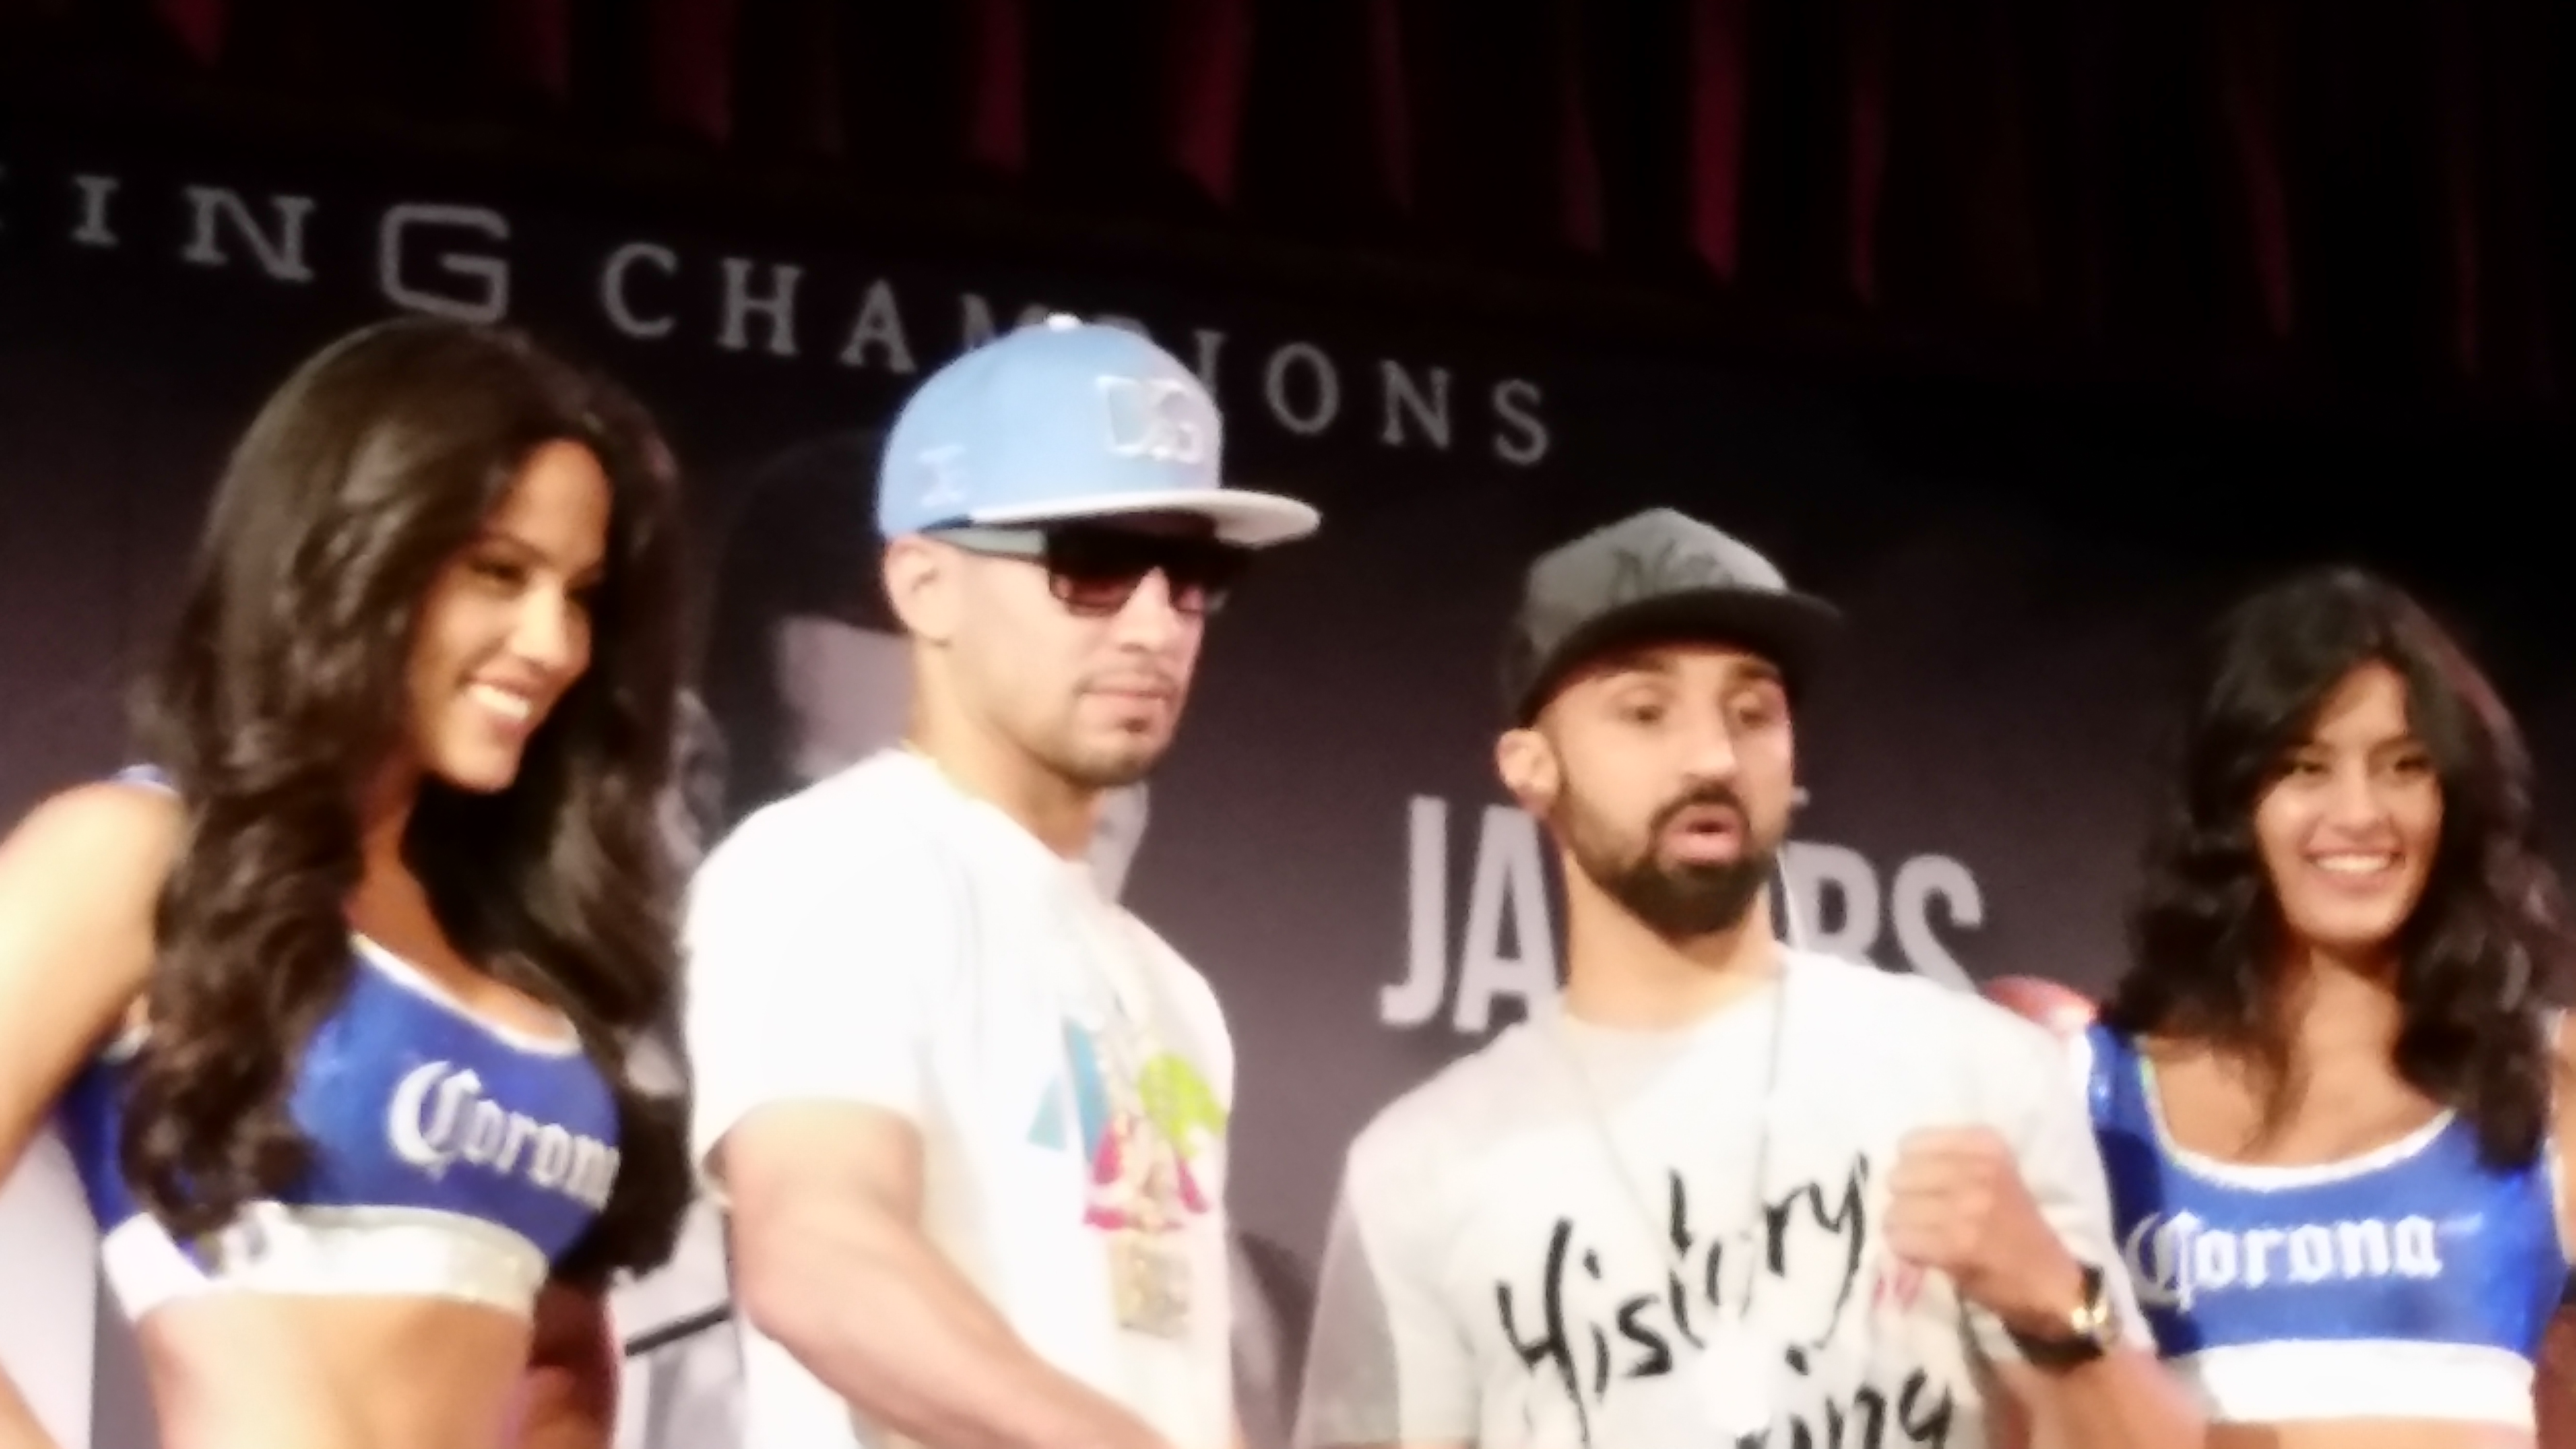 DANNY GARCIA FIGHTS A MAGIC MAN AT WELTERWEIGHT